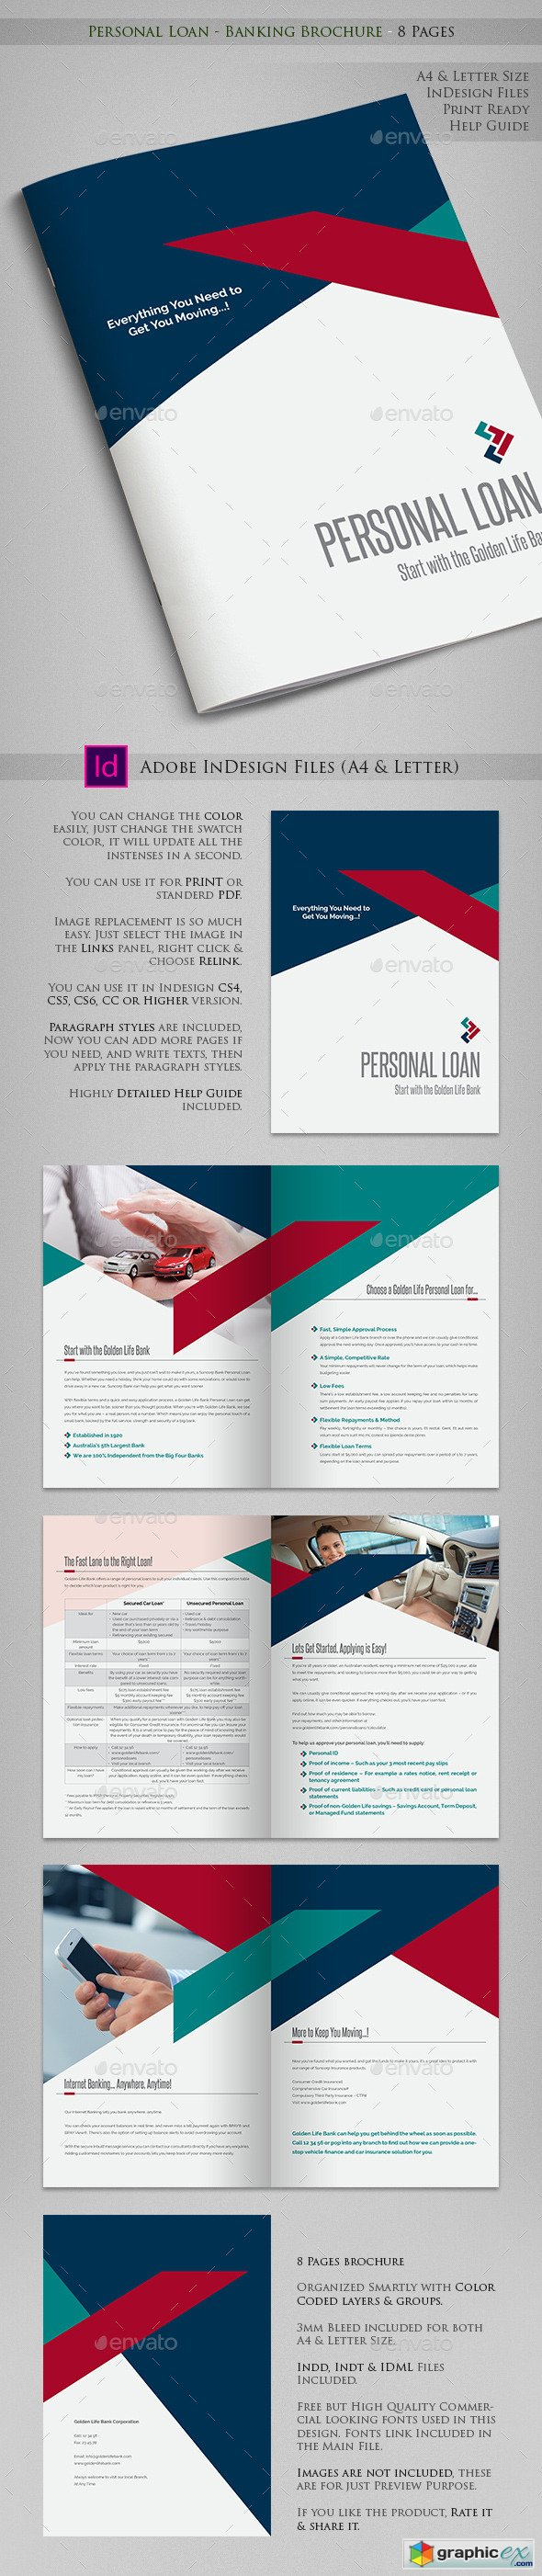 Personal Loan - Banking Brochure - 8 Pages